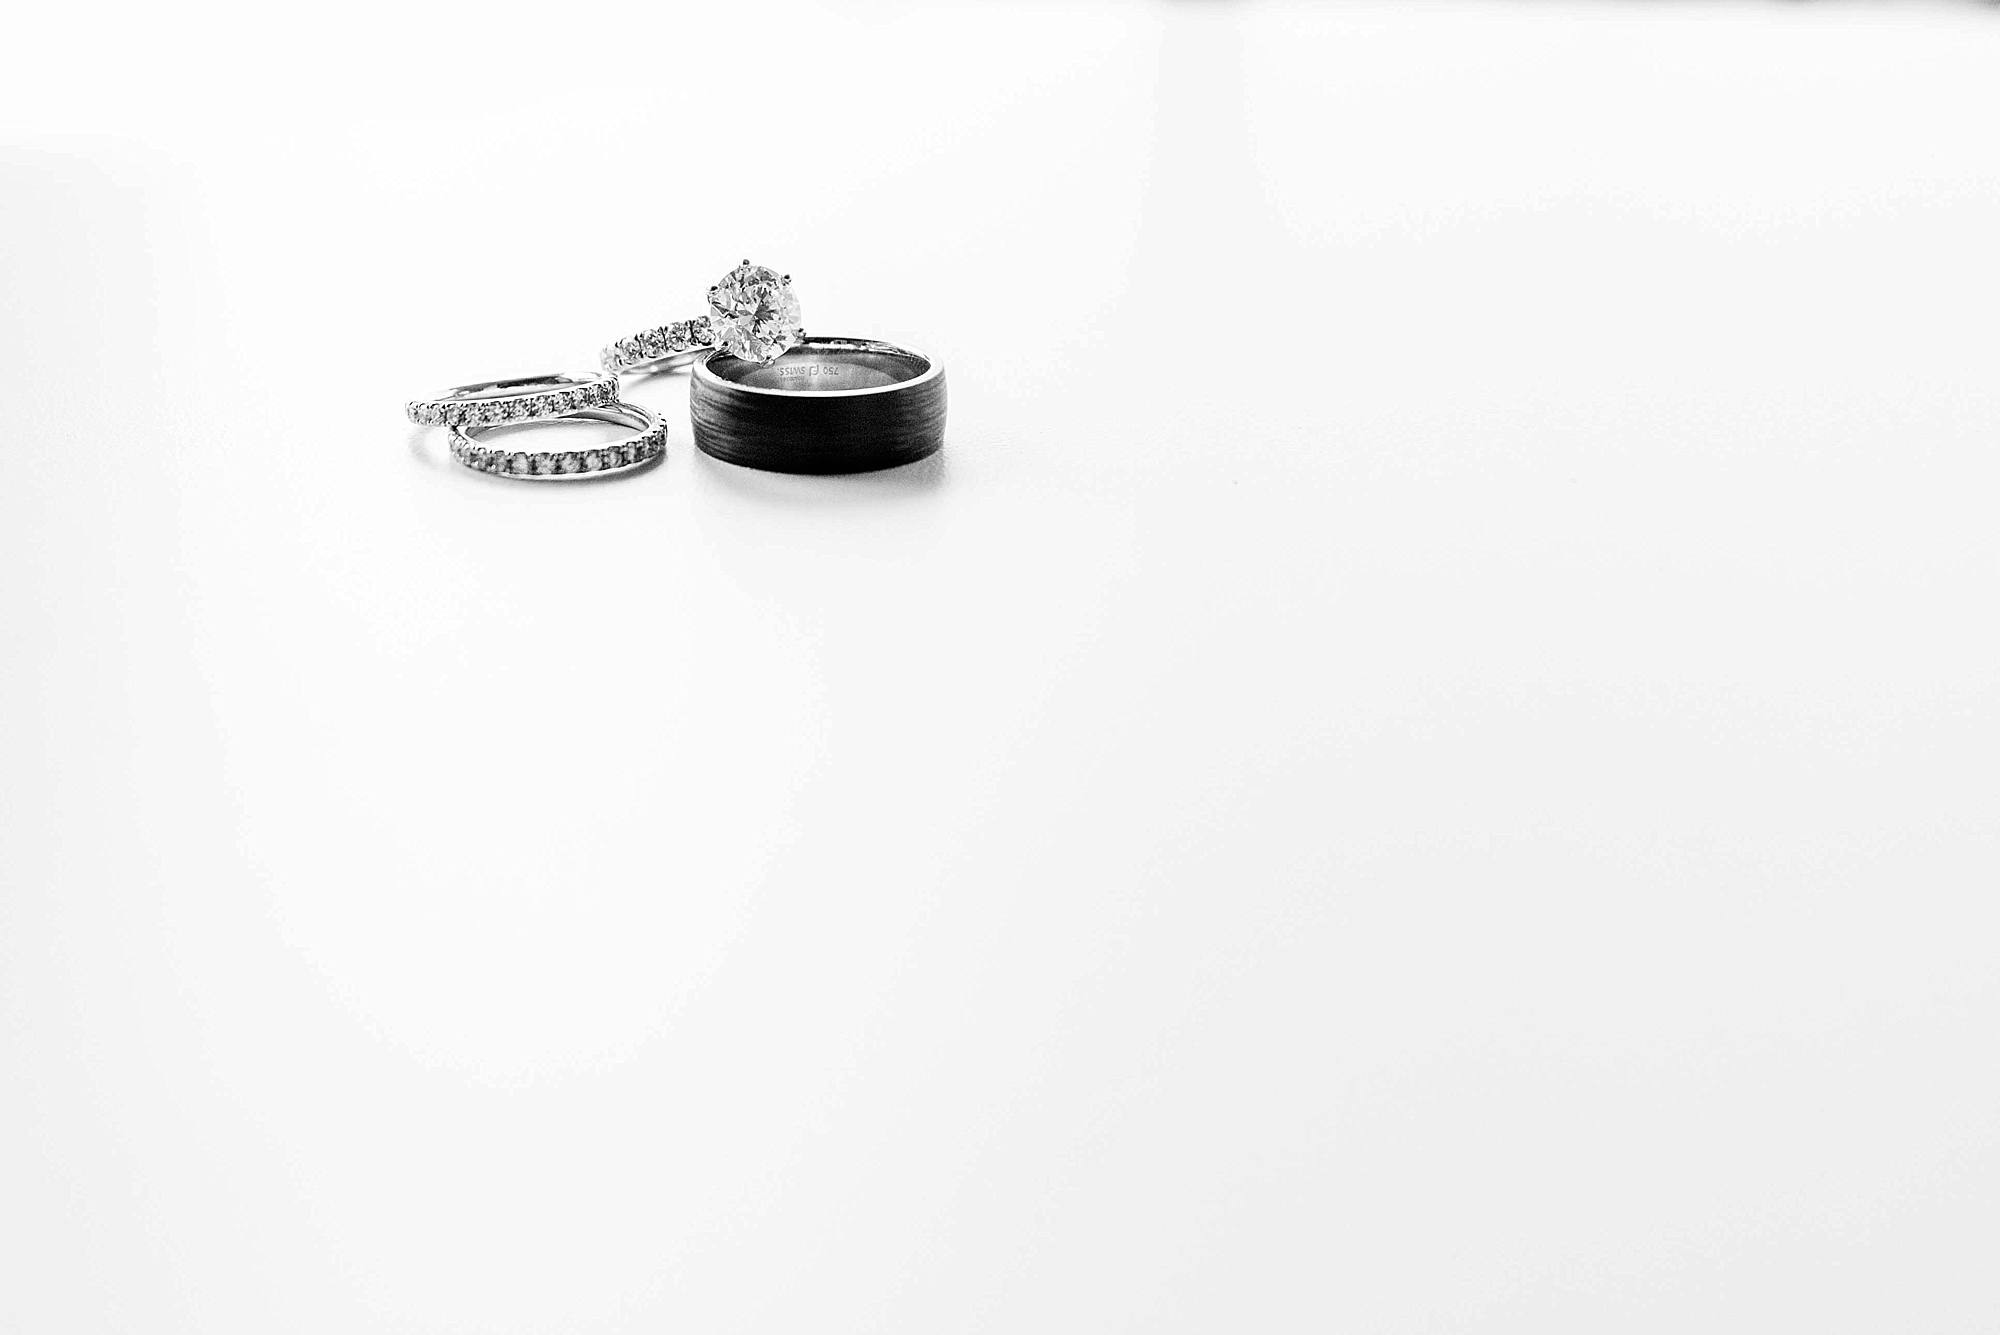 minimalist photo of wedding rings